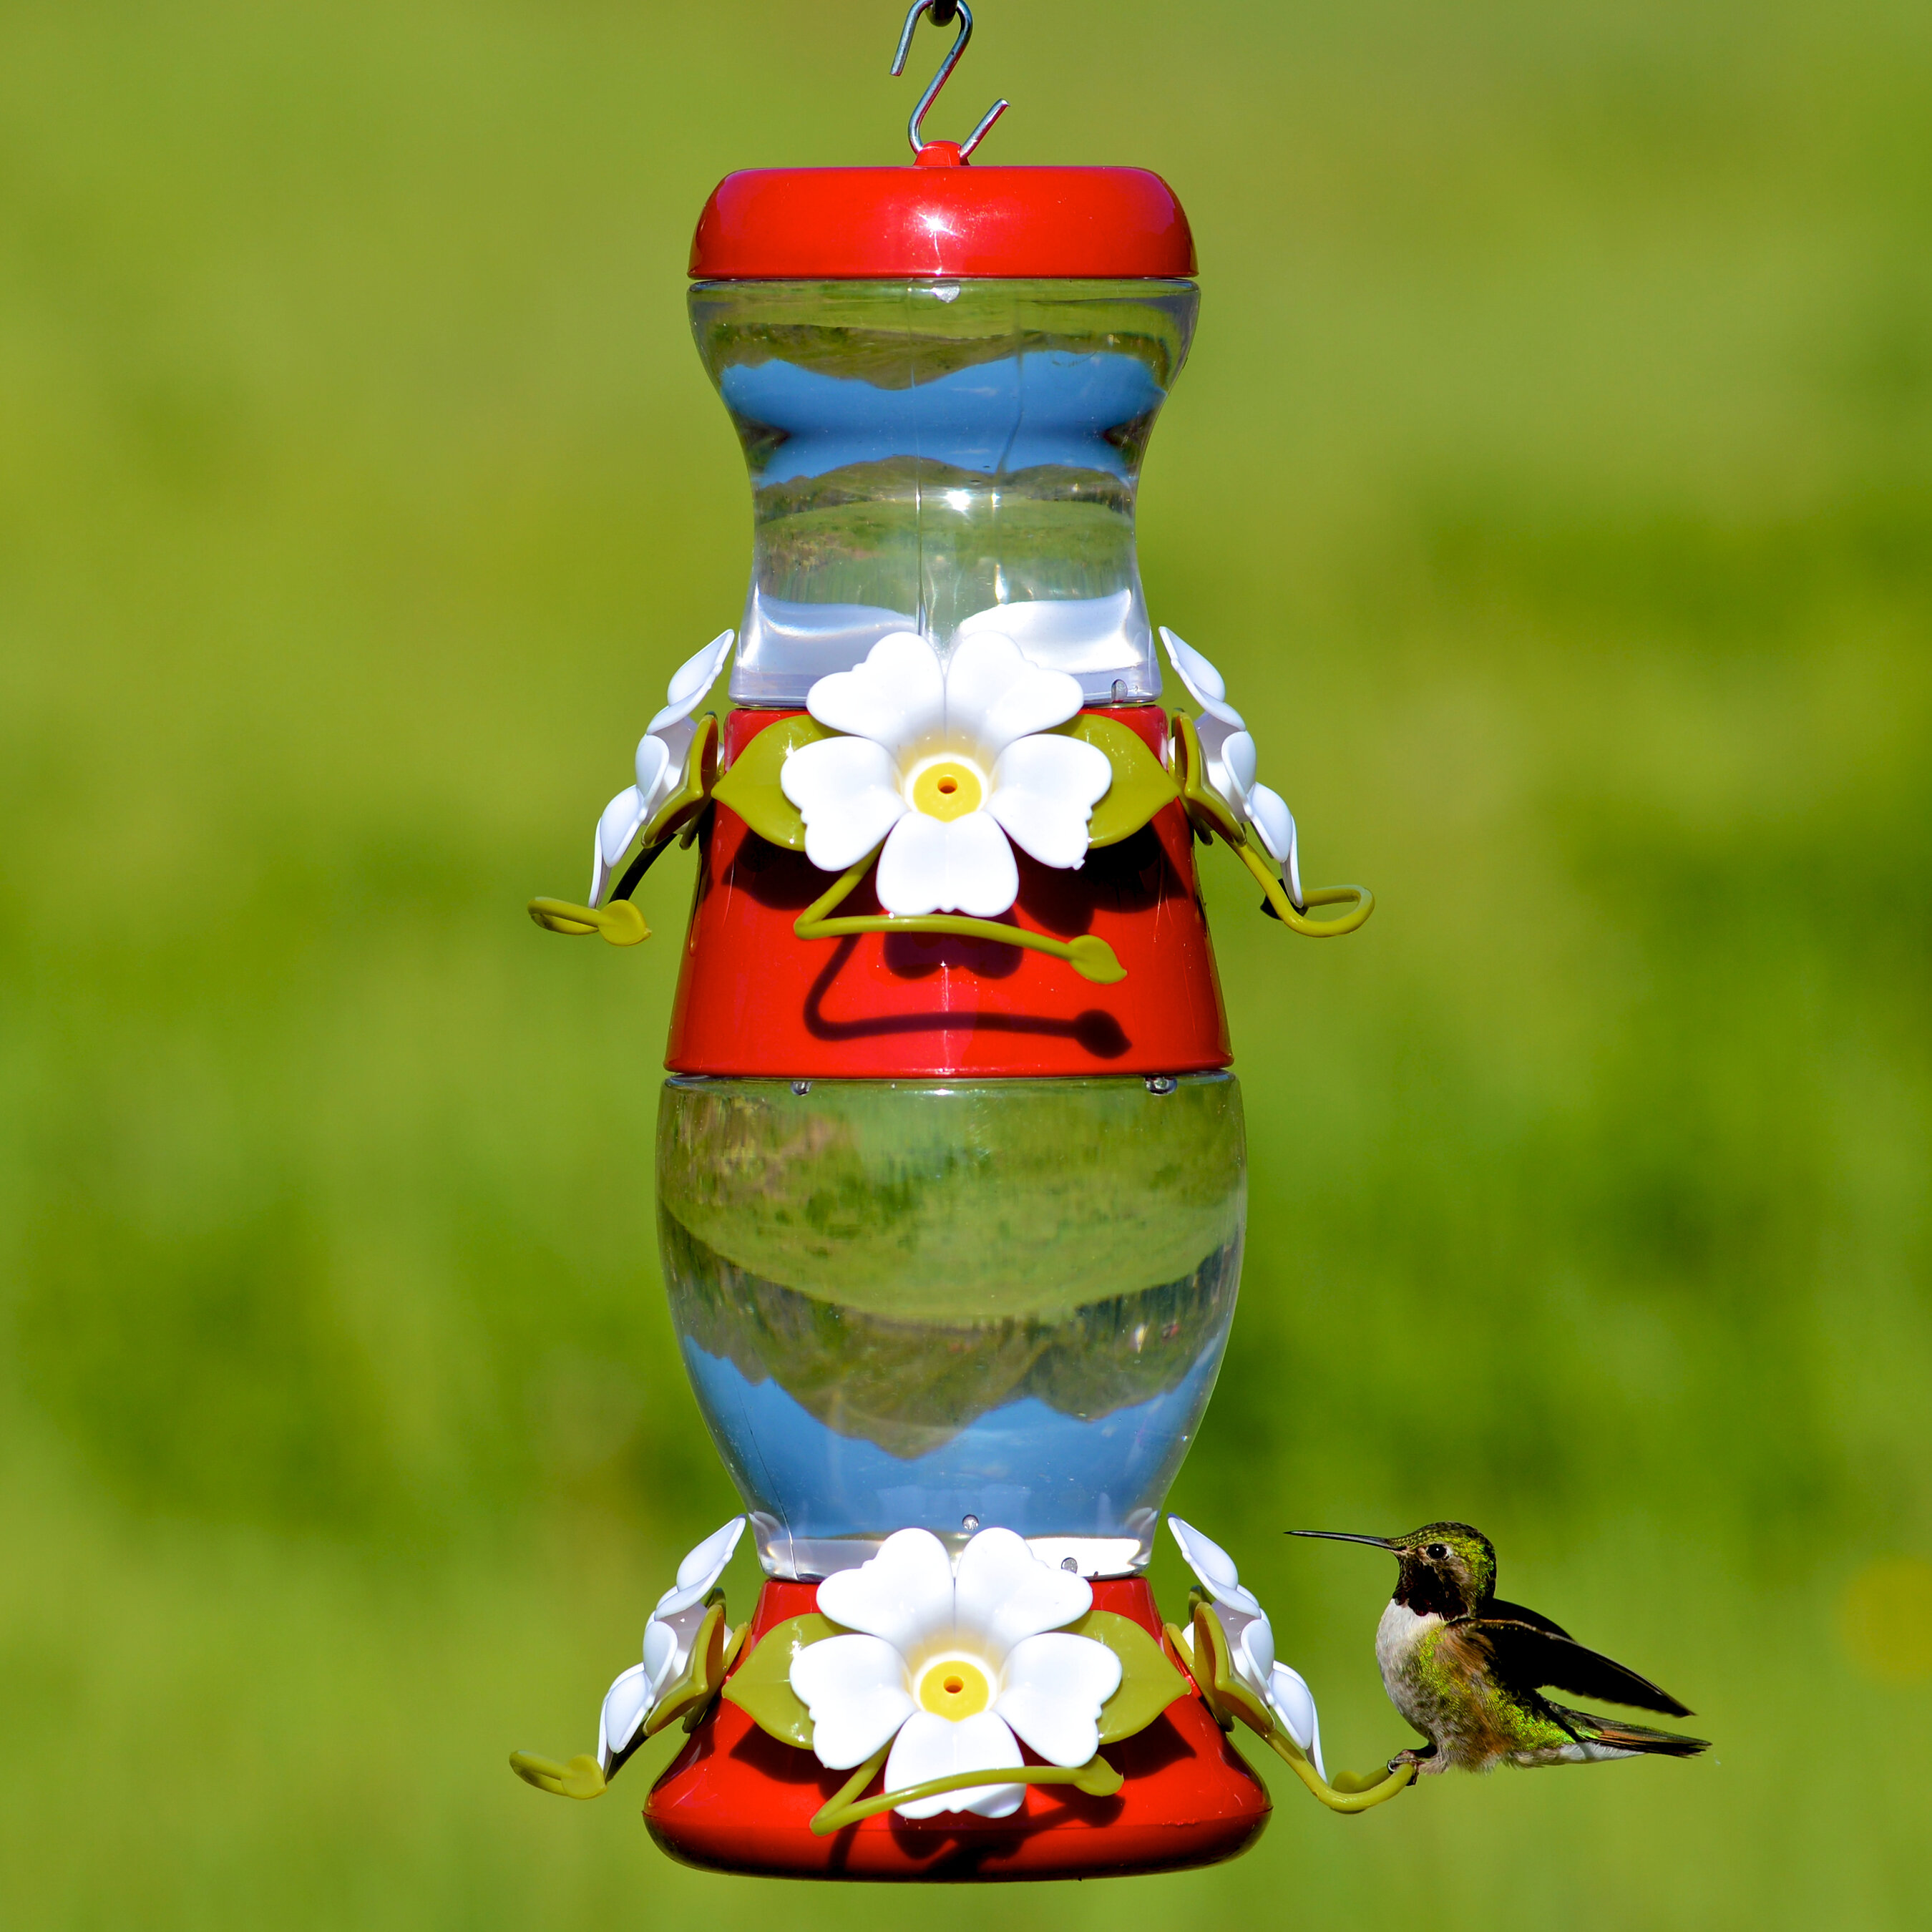 decorative how perches your grande diy own hummingbird feeder a food then feeders gh to using homemade make step recyclable best hairy